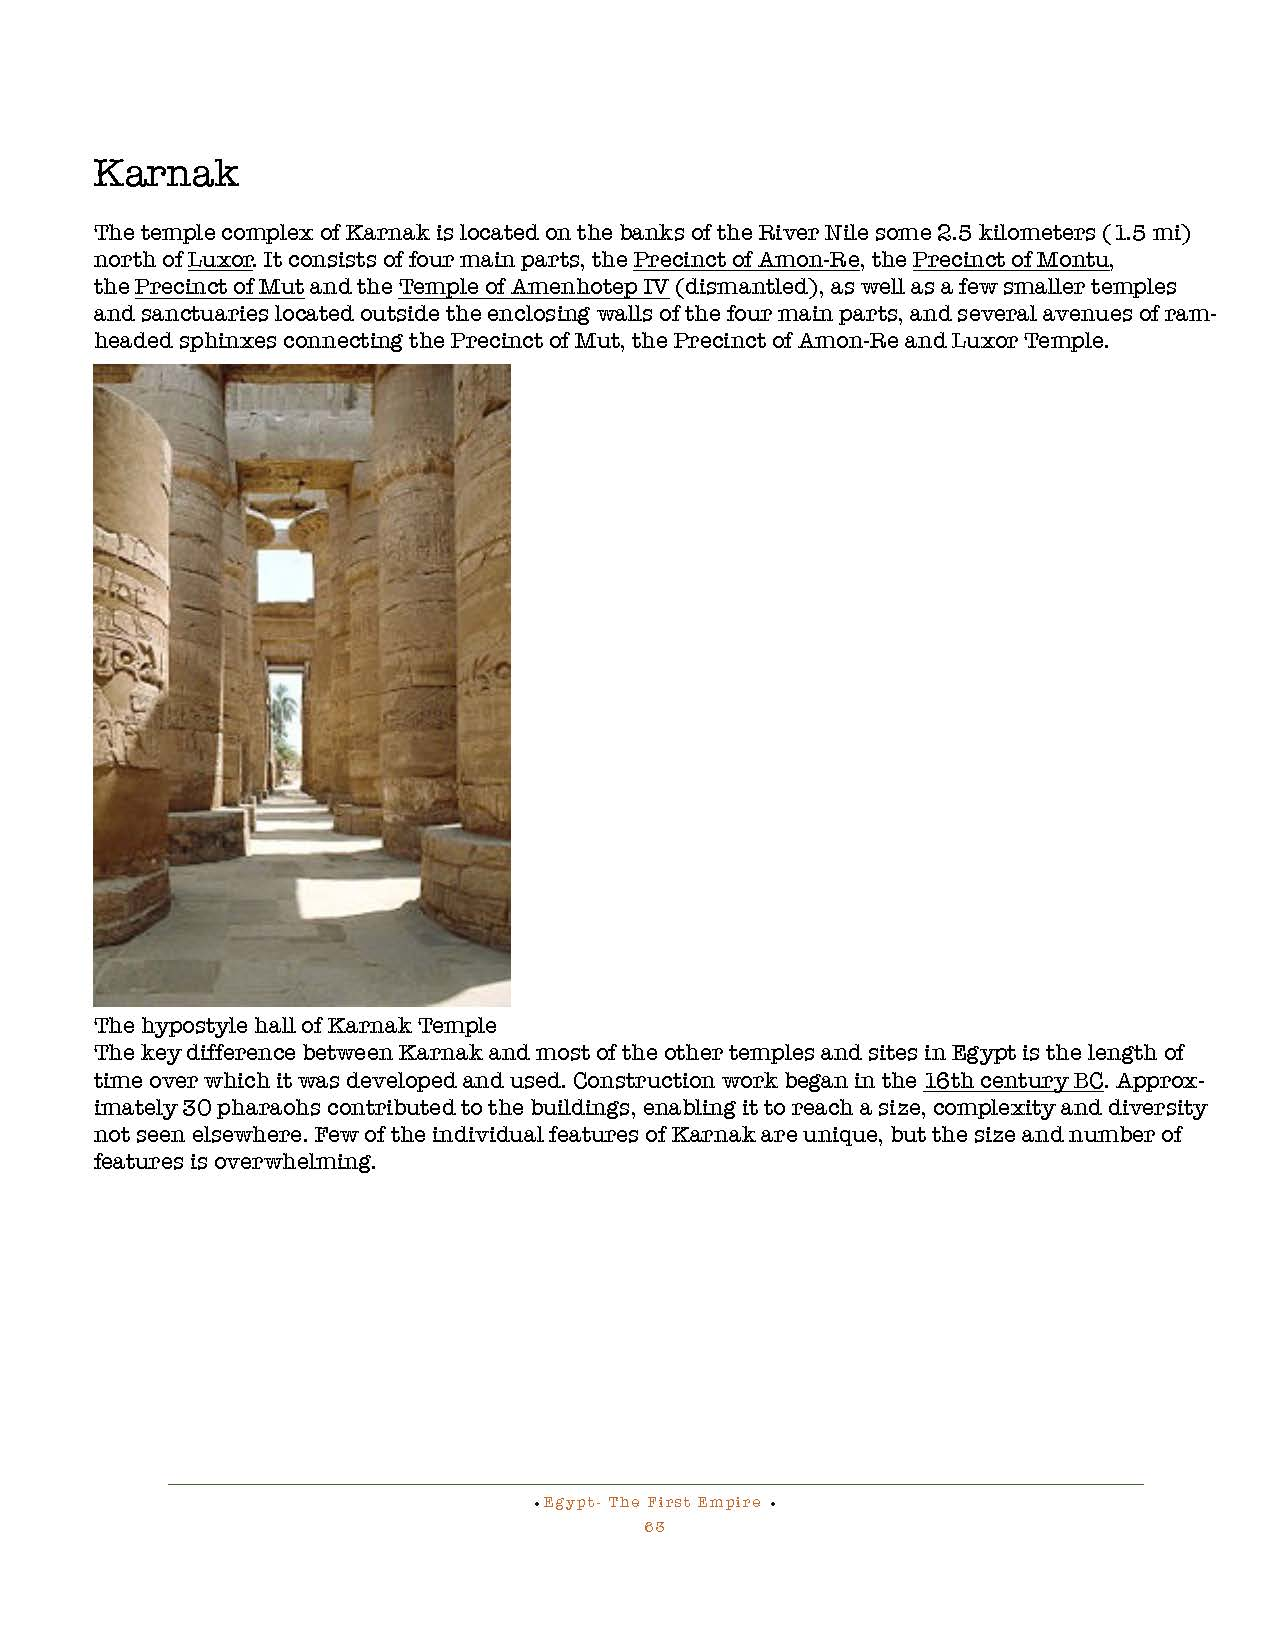 HOCE- Egypt  (First Empire) Notes_Page_063.jpg